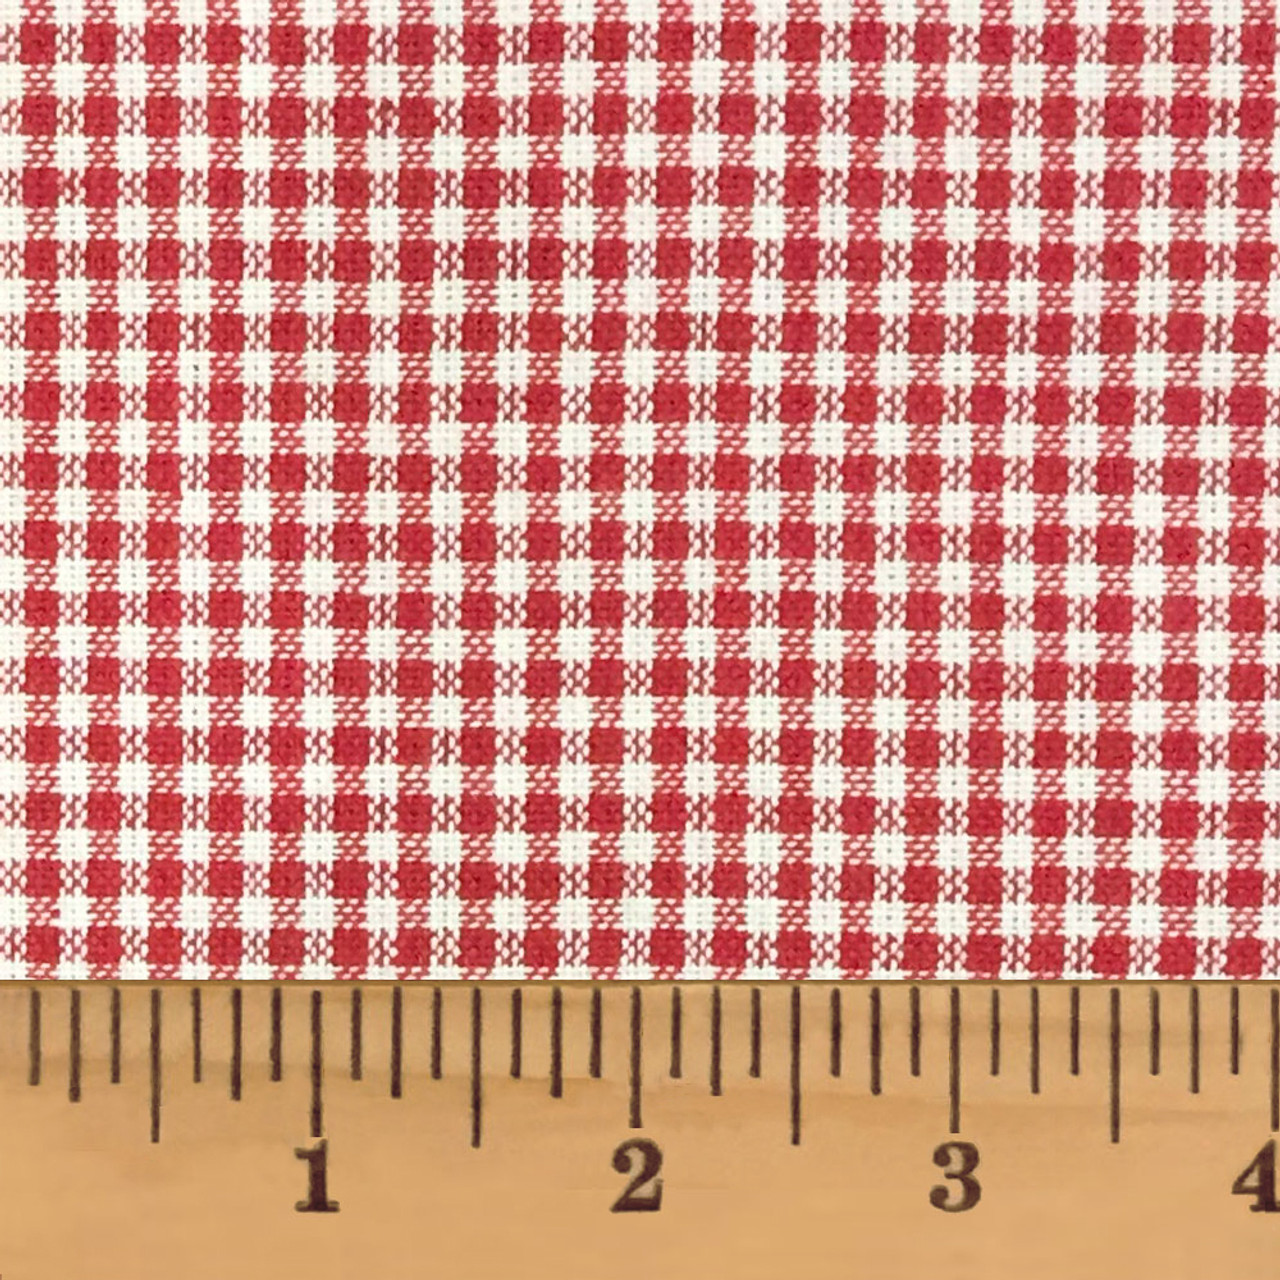 Cherry Red 2 Homespun Cotton Fabric